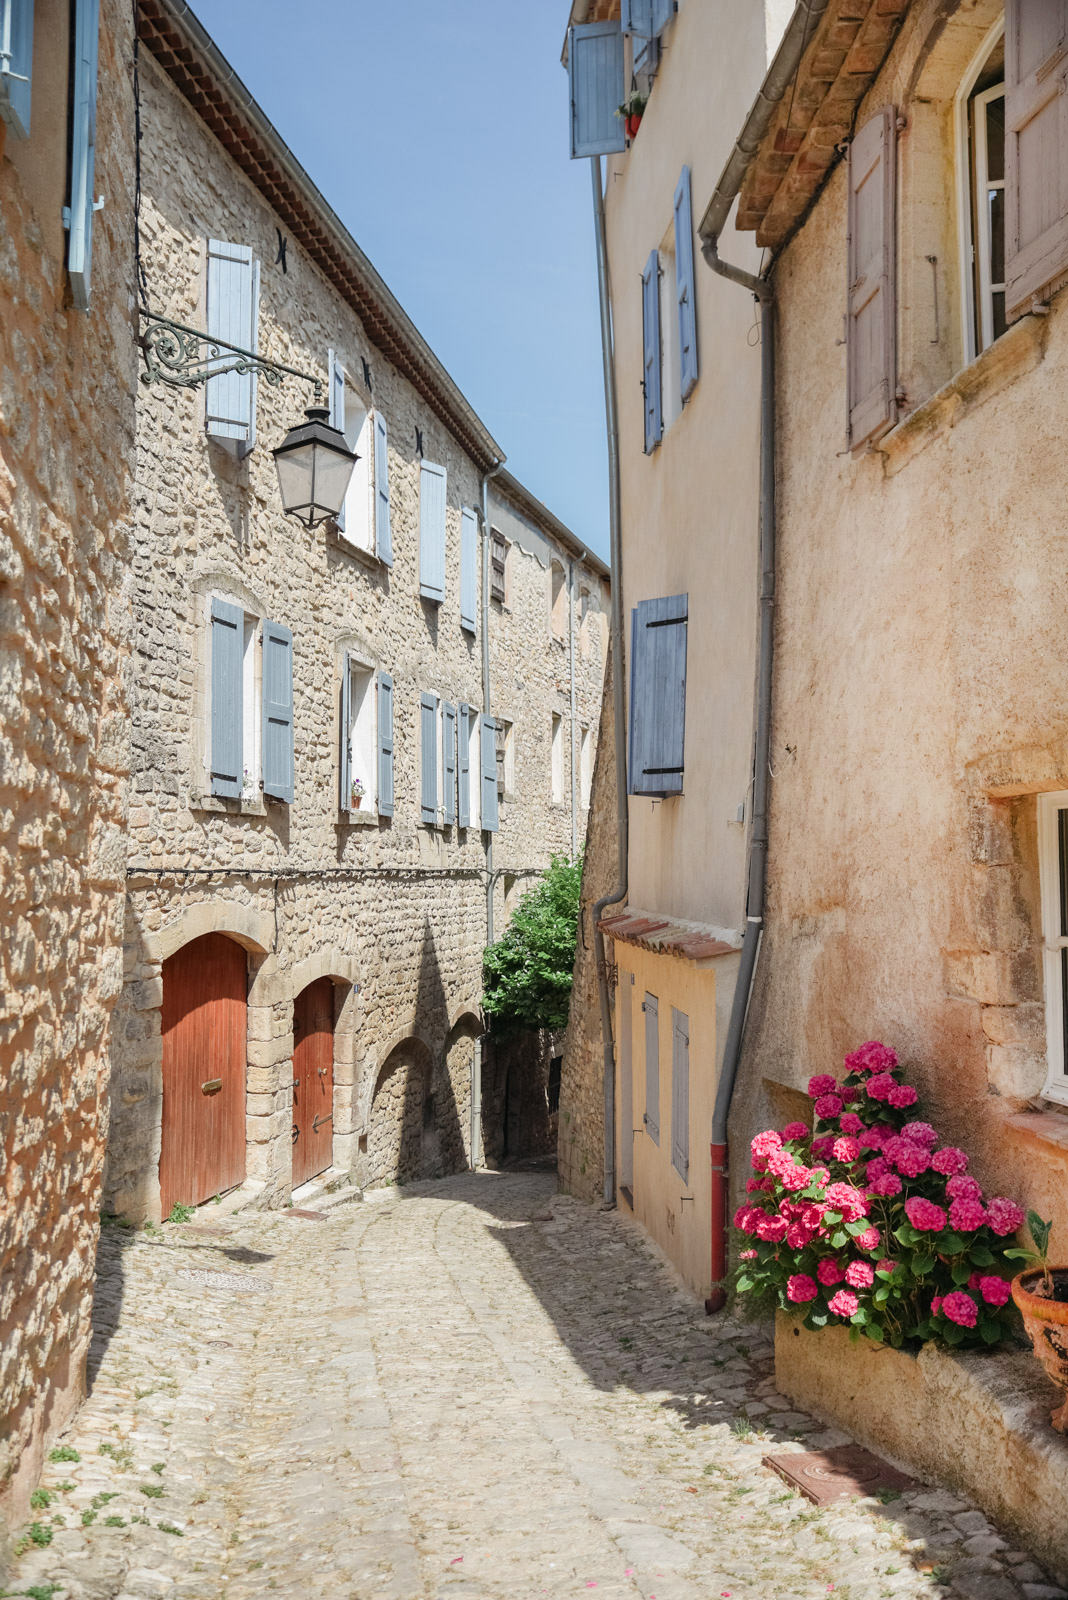 Blog-Mode-And-The-City-Lifestyle-Provence-Couvent-Minimes-Manosque-Fourcalquier-16